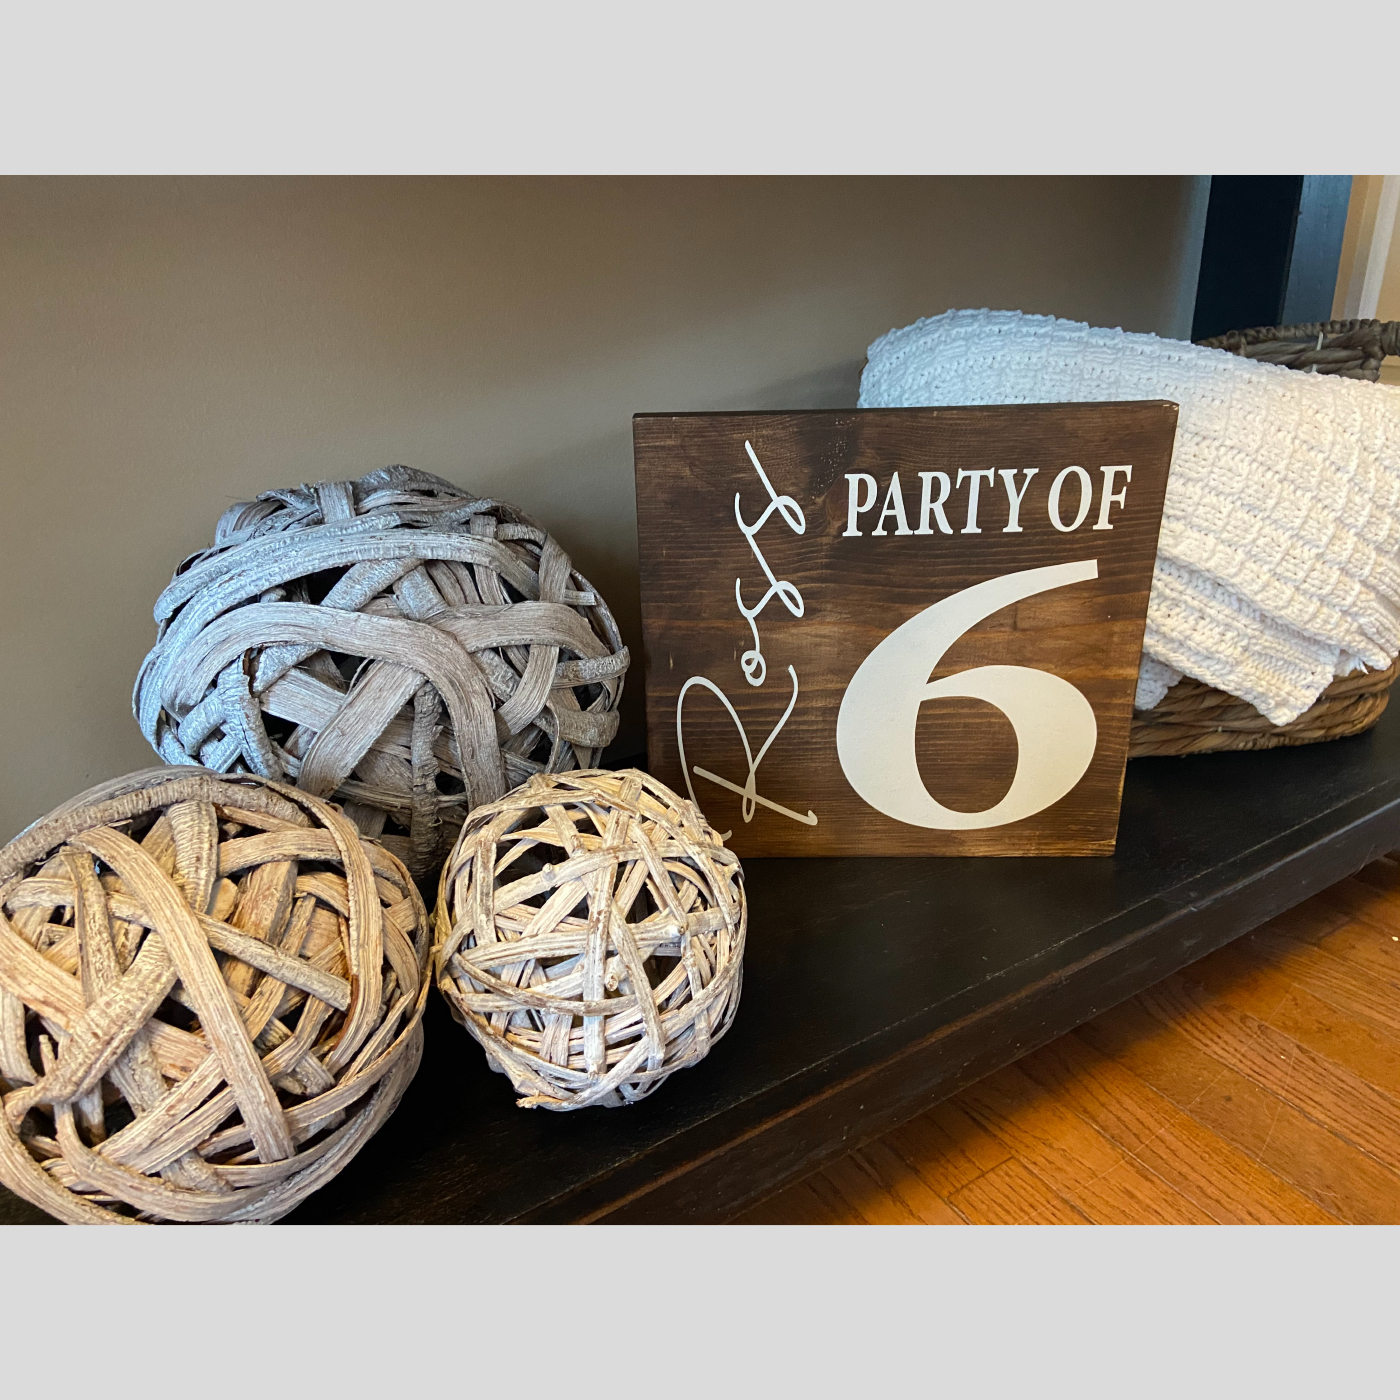 Party of Personalized DIY In Your Digs The Rustic Wood Project